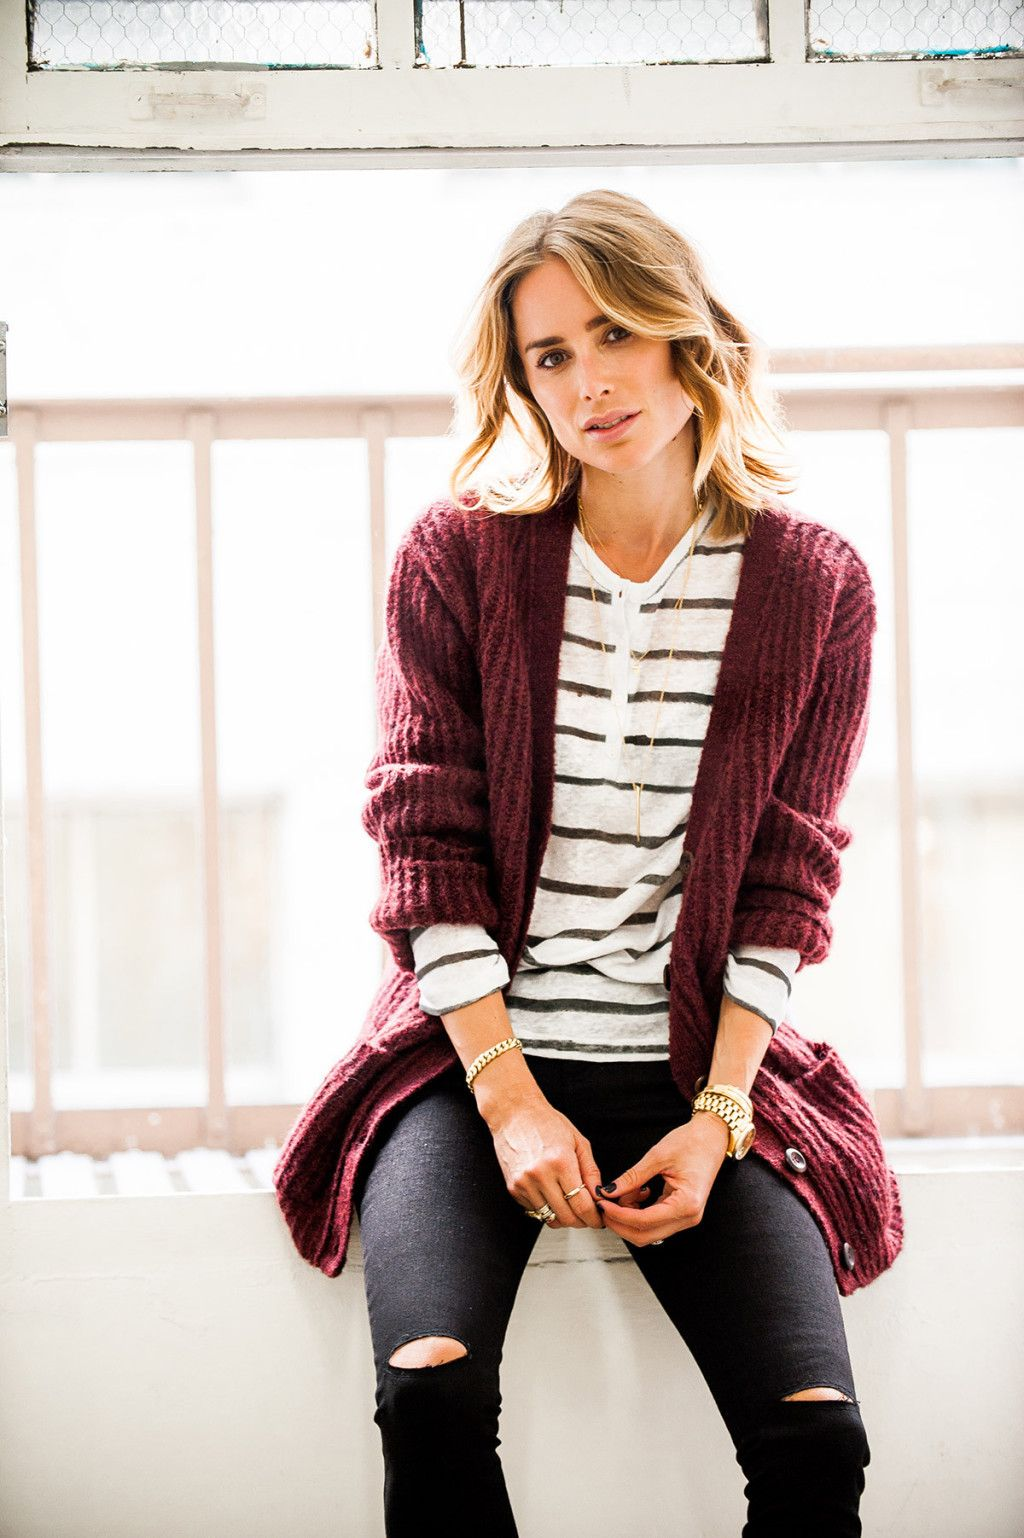 Knits are such a fall thing!